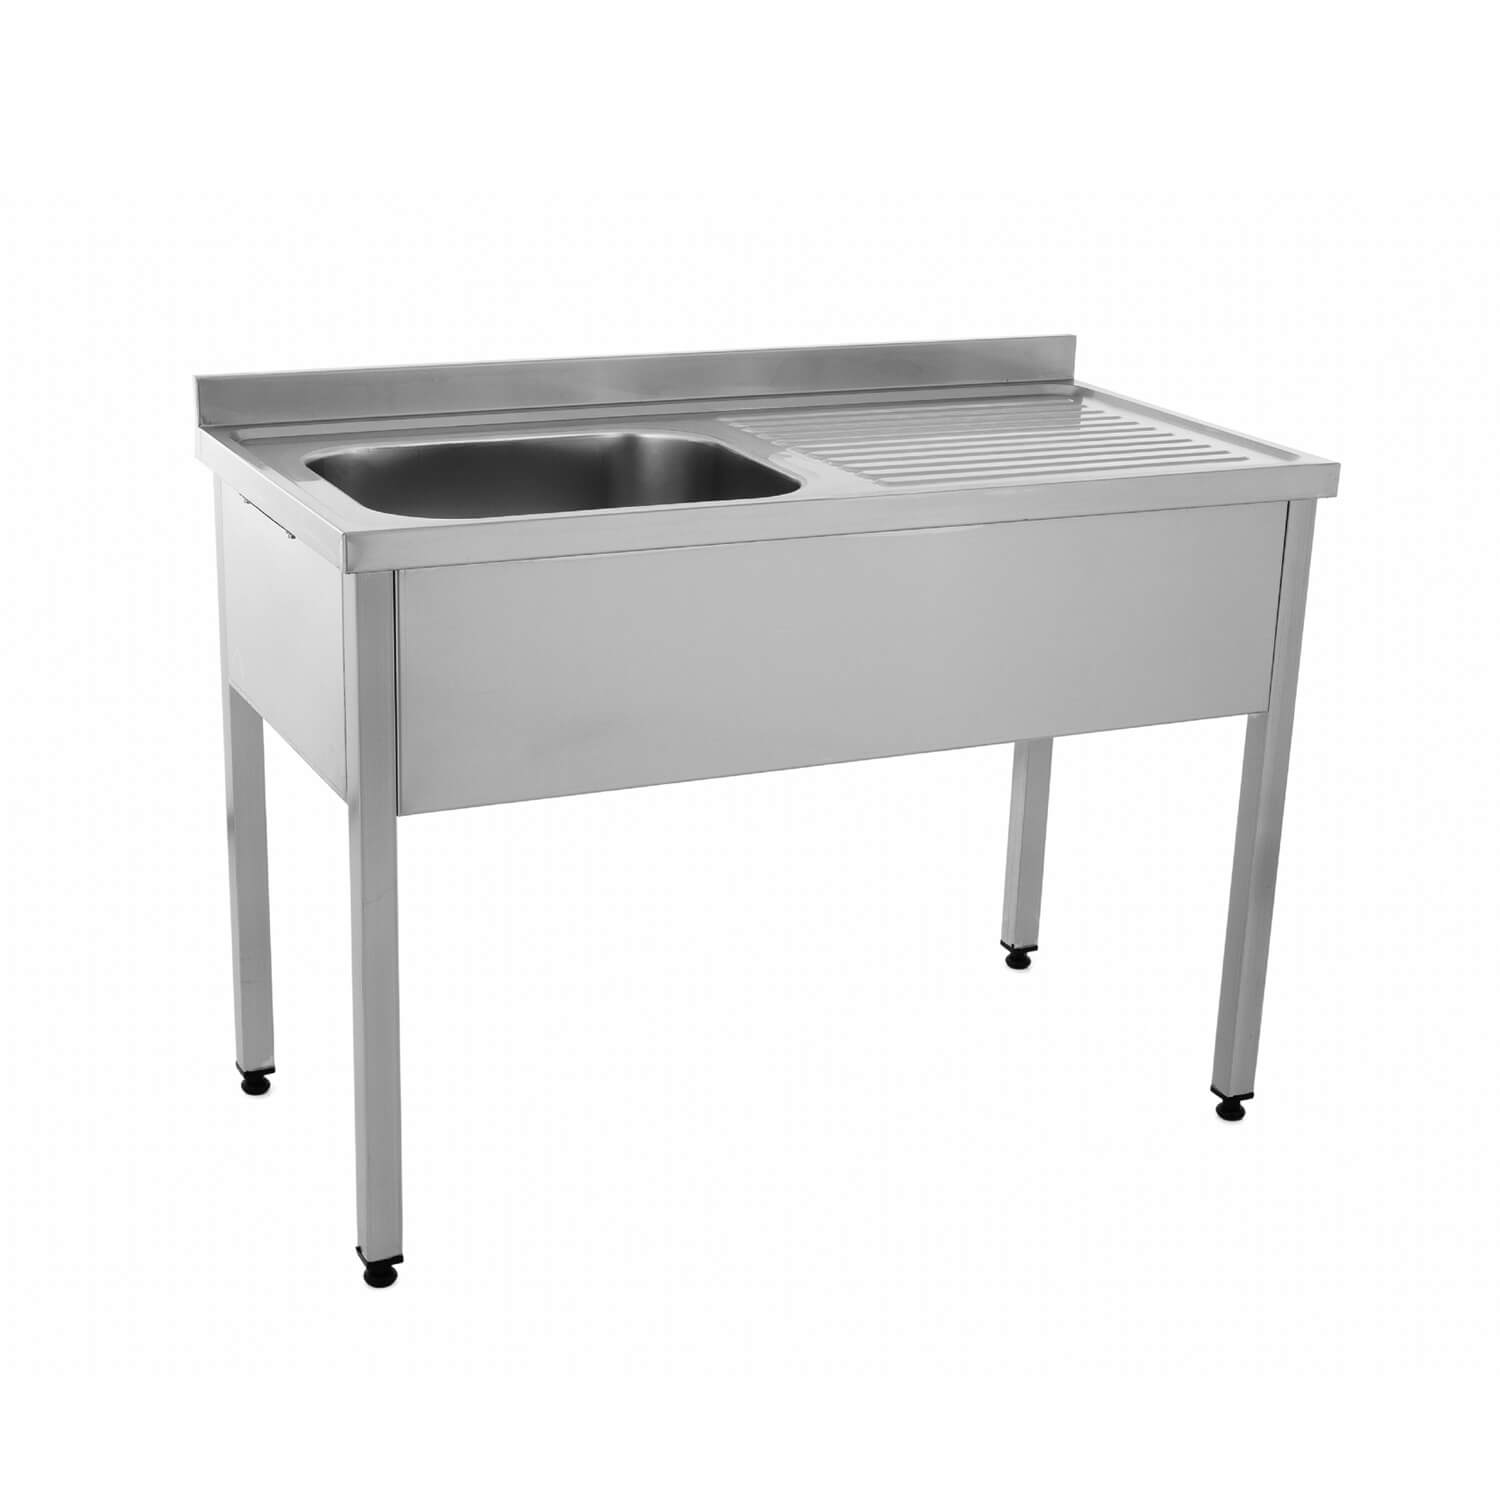 Tools Washing Sink with Table